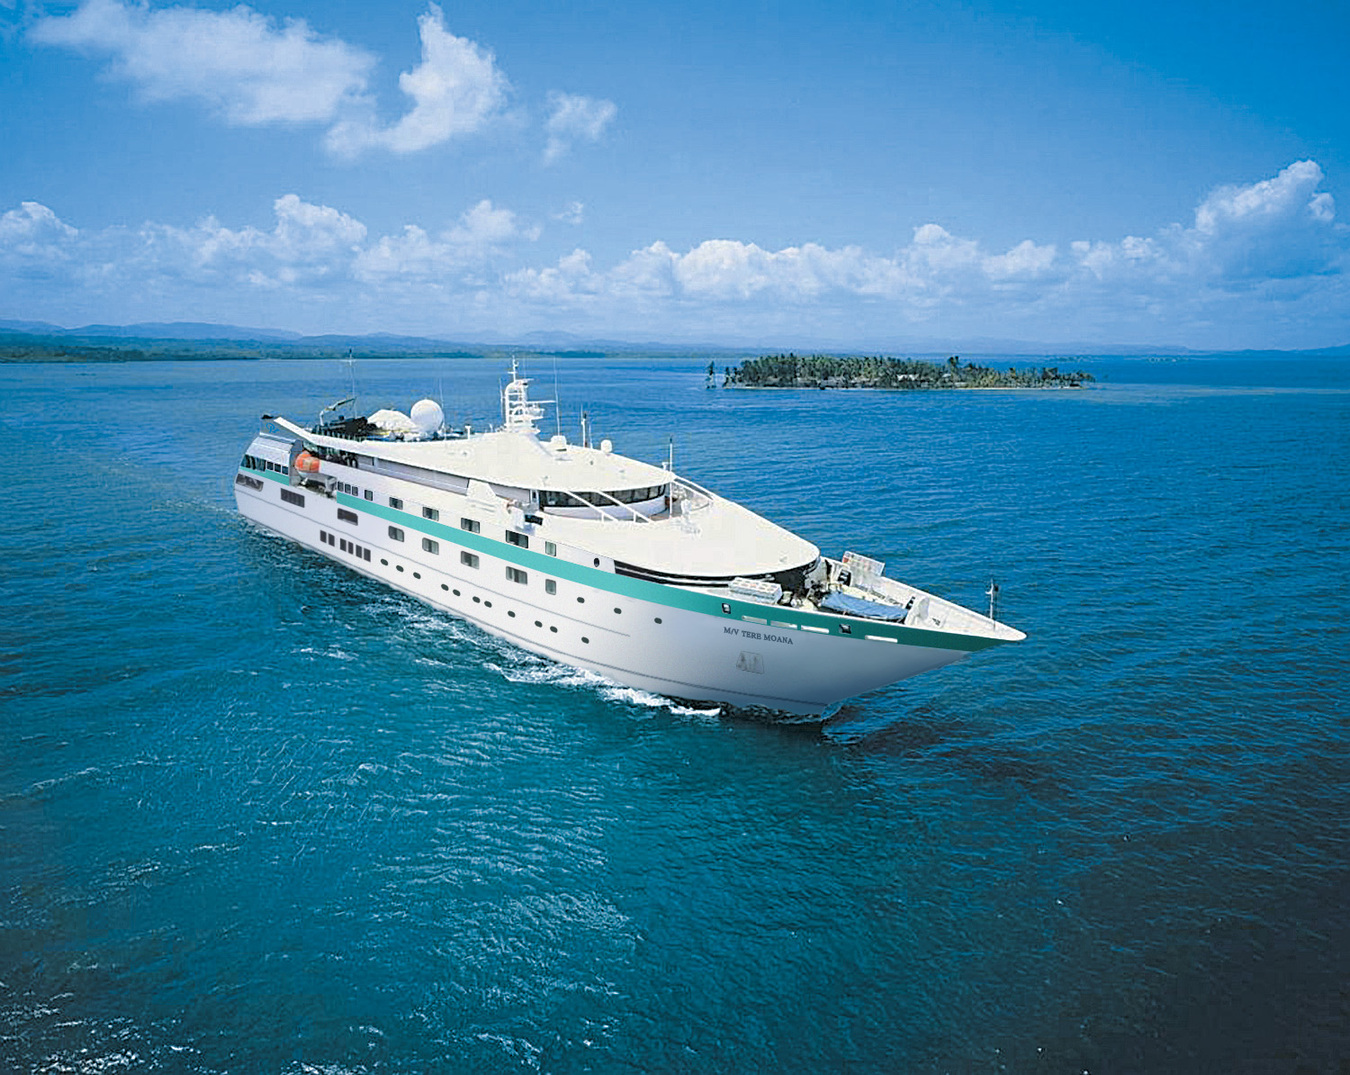 Paul gauguin cruise paul gauguin cruises cruise for Small cruise ship lines